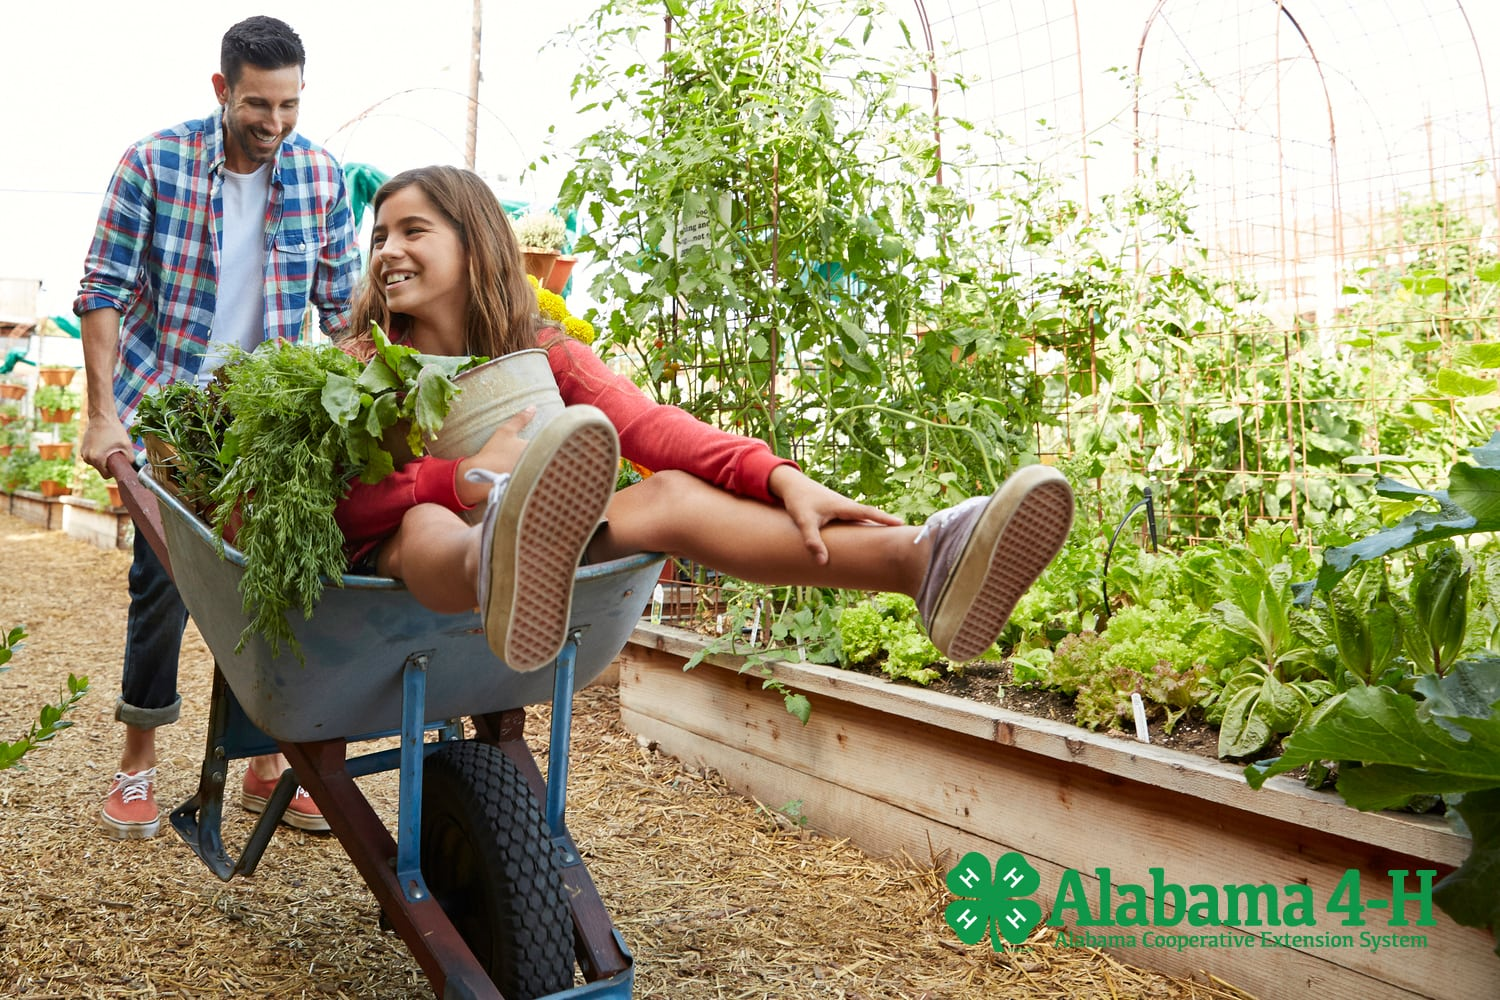 4-H father and daughter next to home garden. Alabama 4-H family.